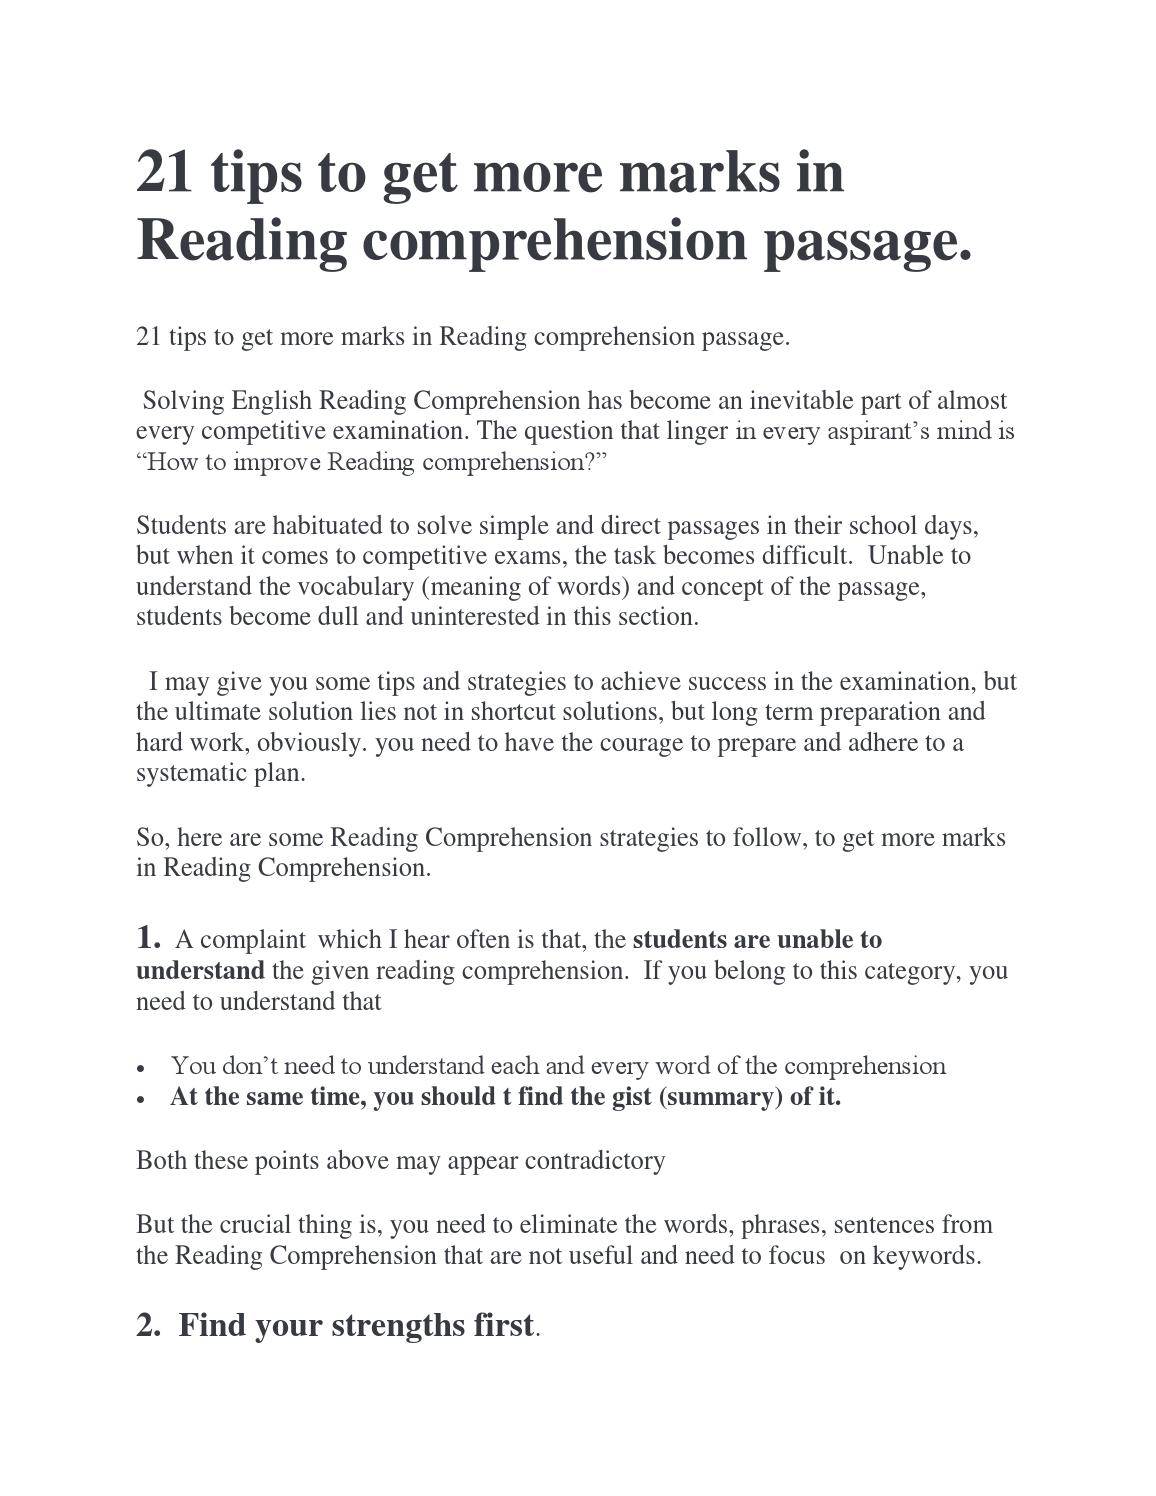 - 21 English Reading Comprehension Tips By Englishachiever - Issuu